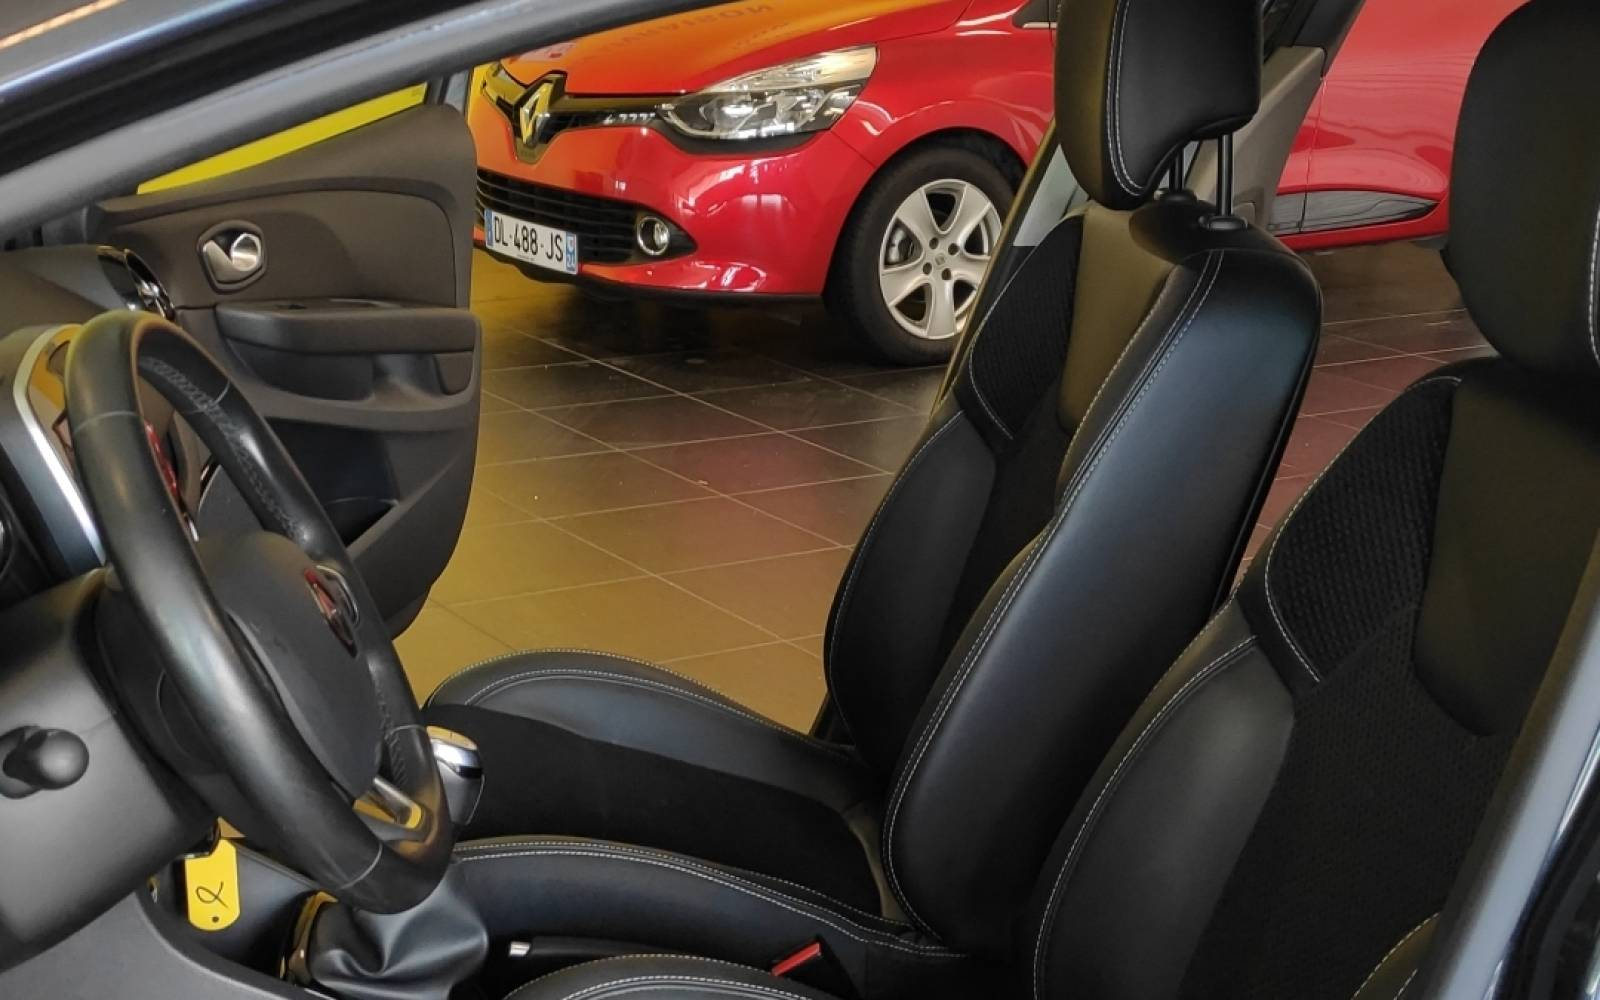 RENAULT Clio TCe 90 Energy - véhicule d'occasion - Site Internet Faurie - Sarda - 24750 - Trelissac - 9